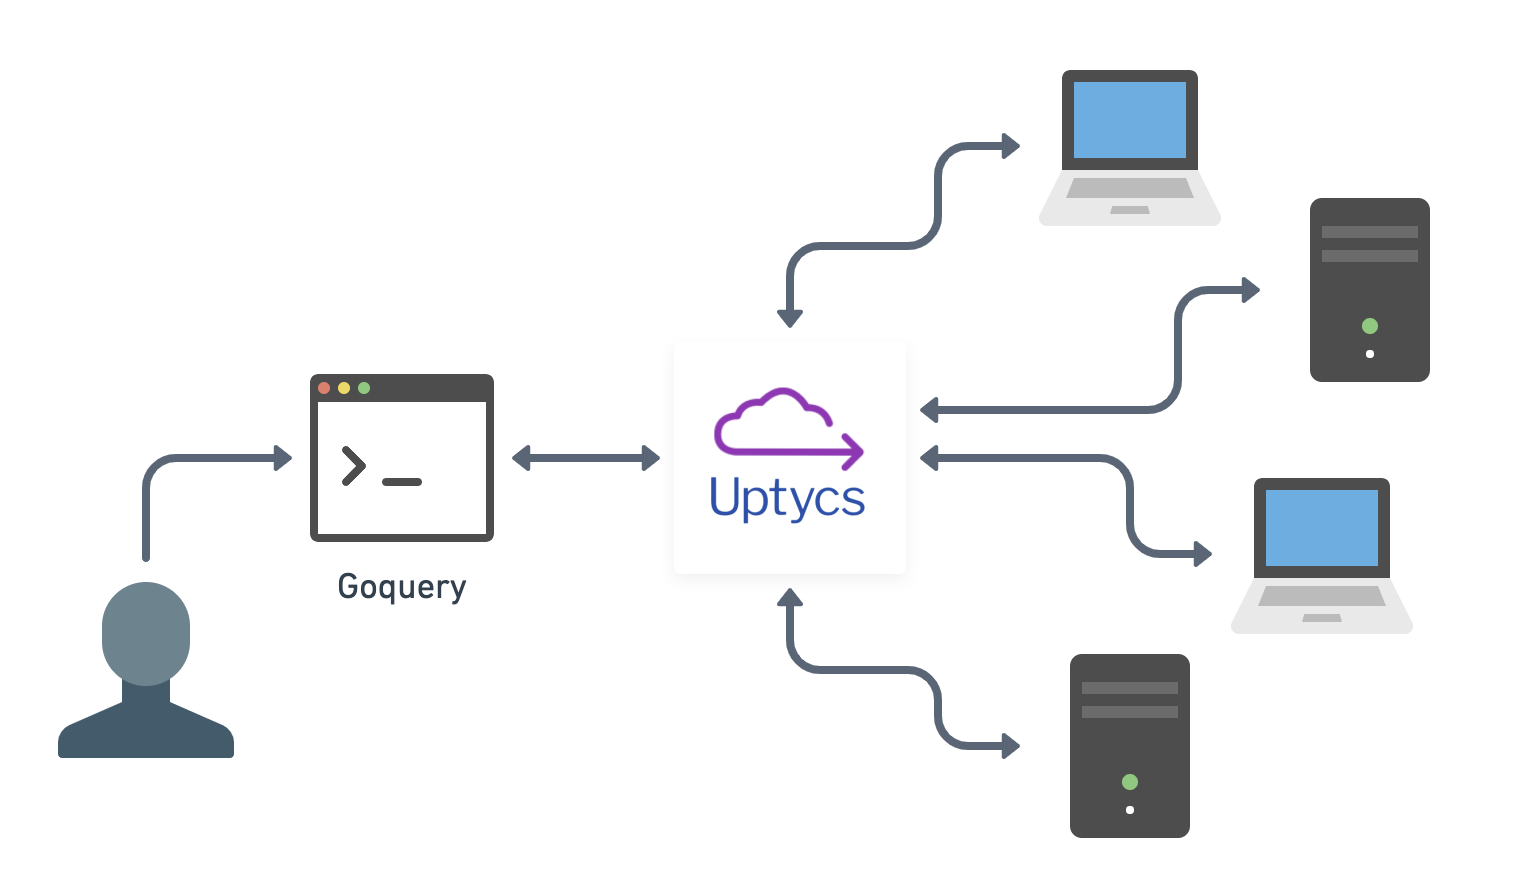 goquery-uptycs-flow-revised